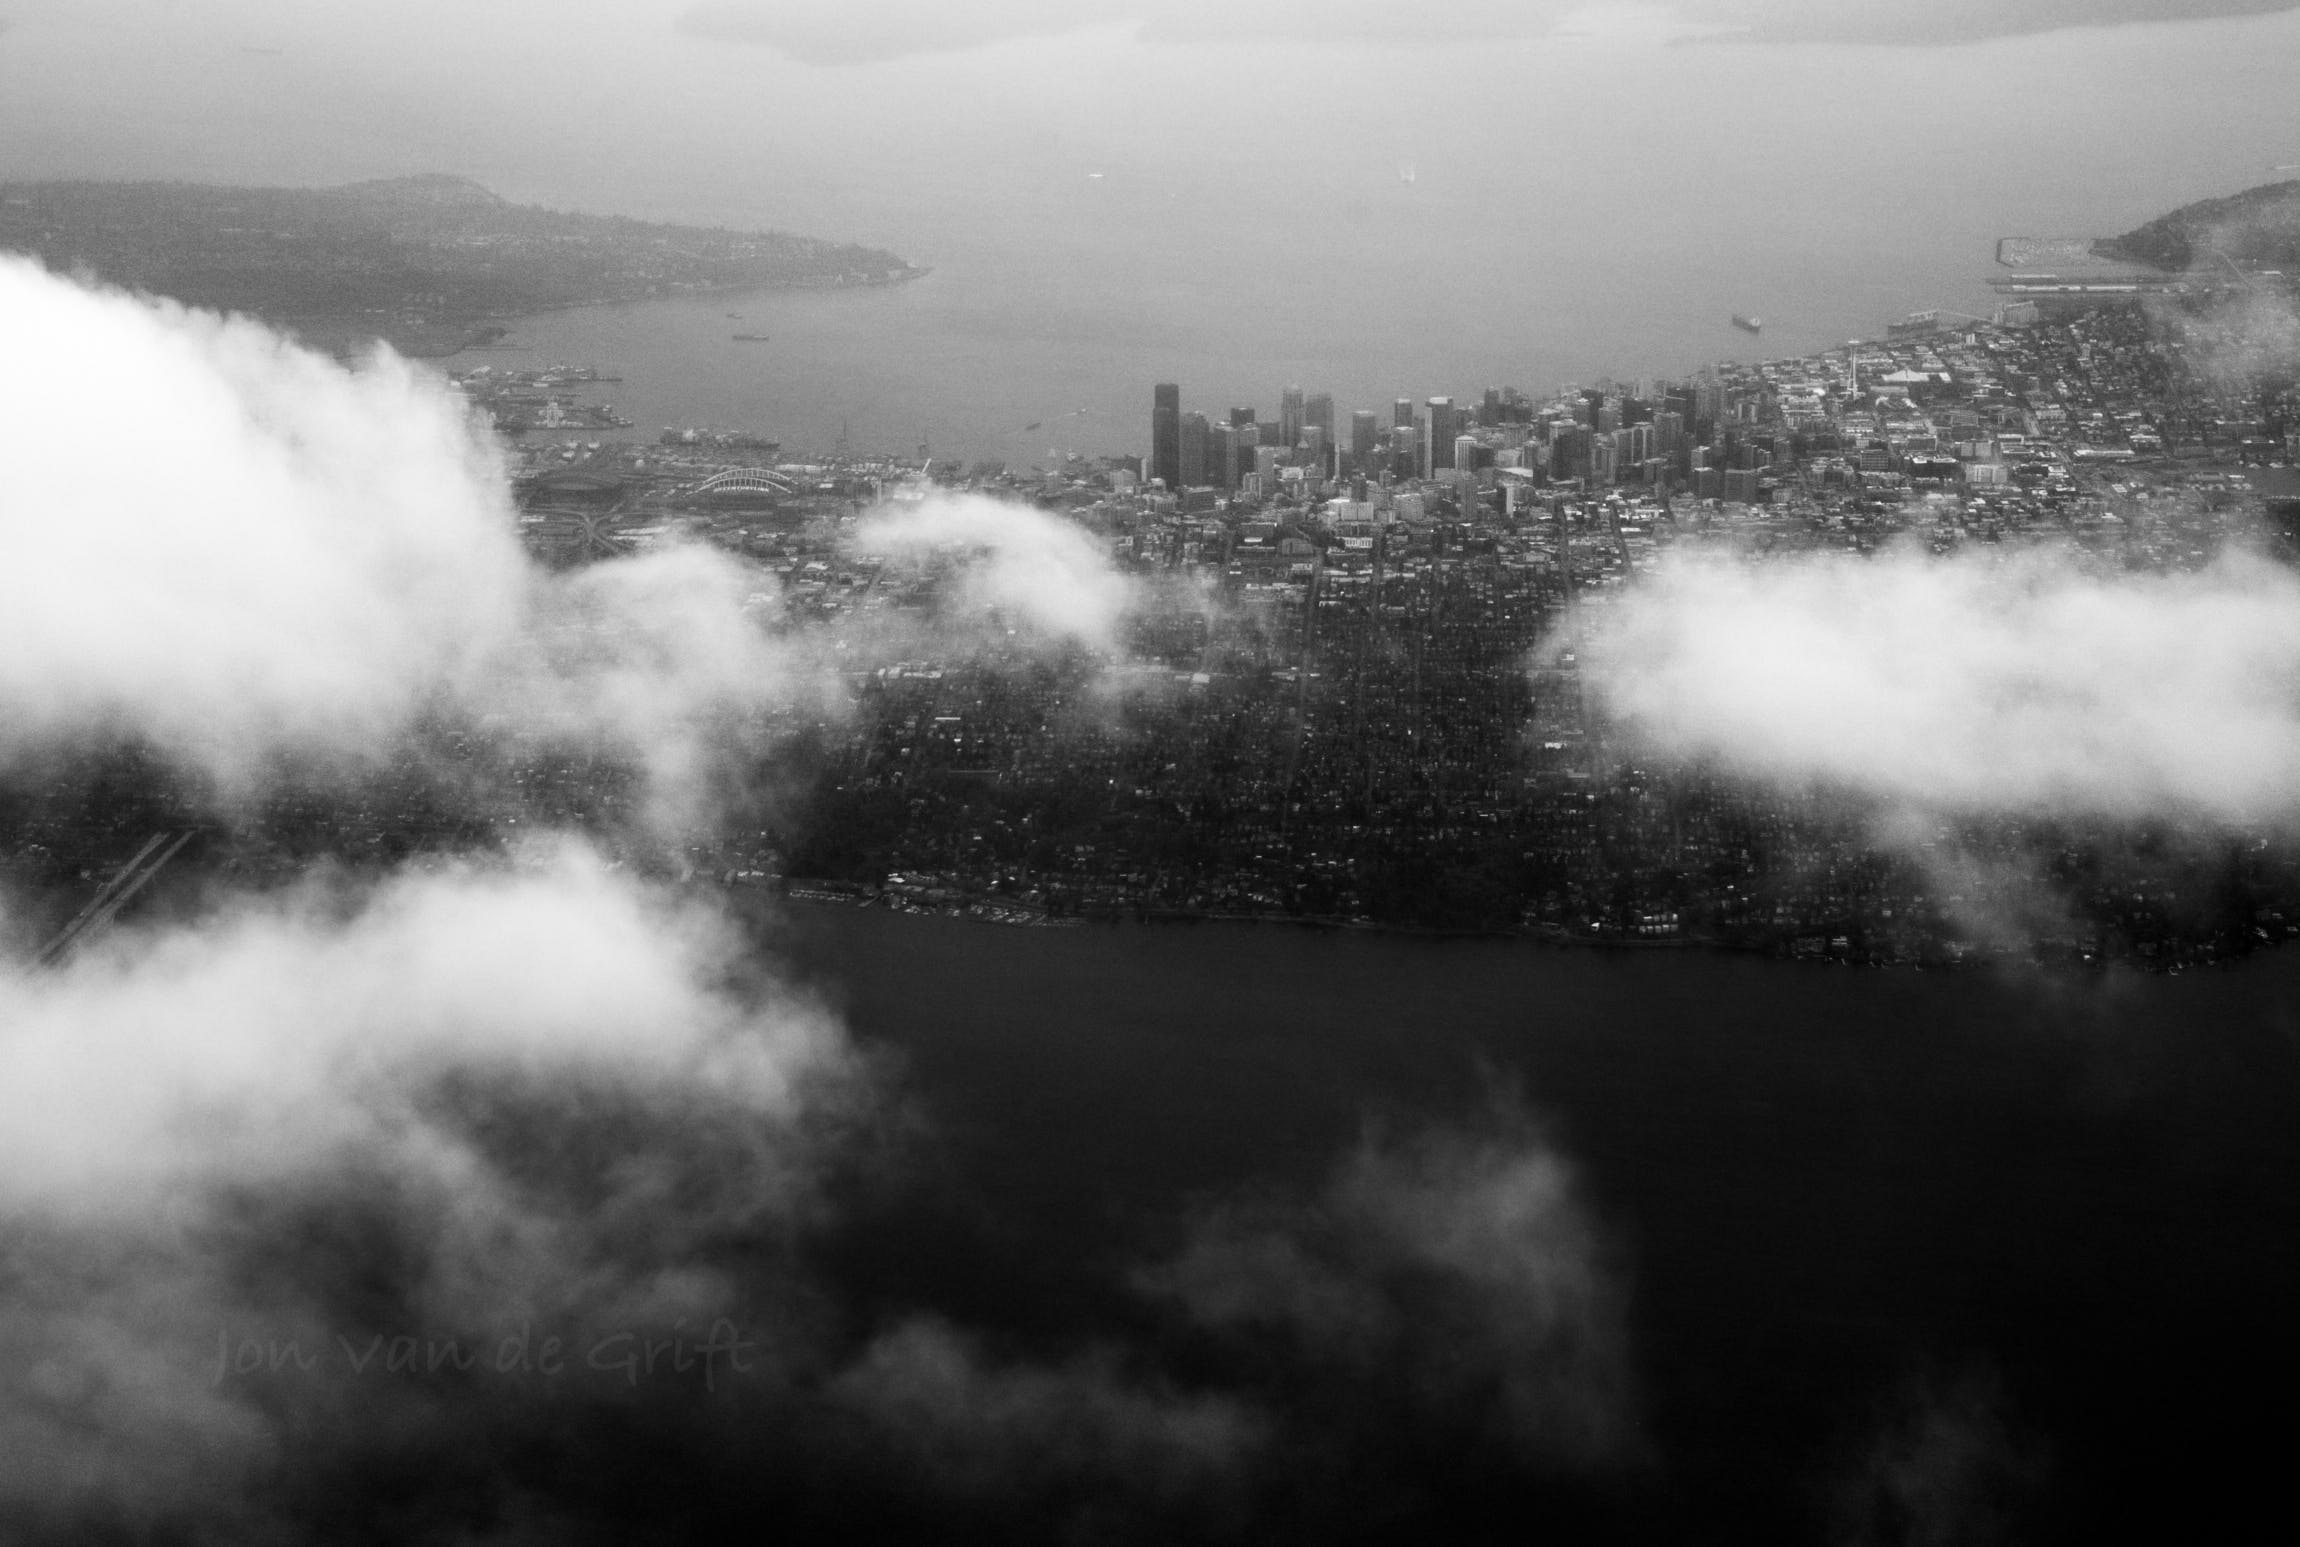 Black and white aerial photograph of the city of Seattle surrounded by clouds.